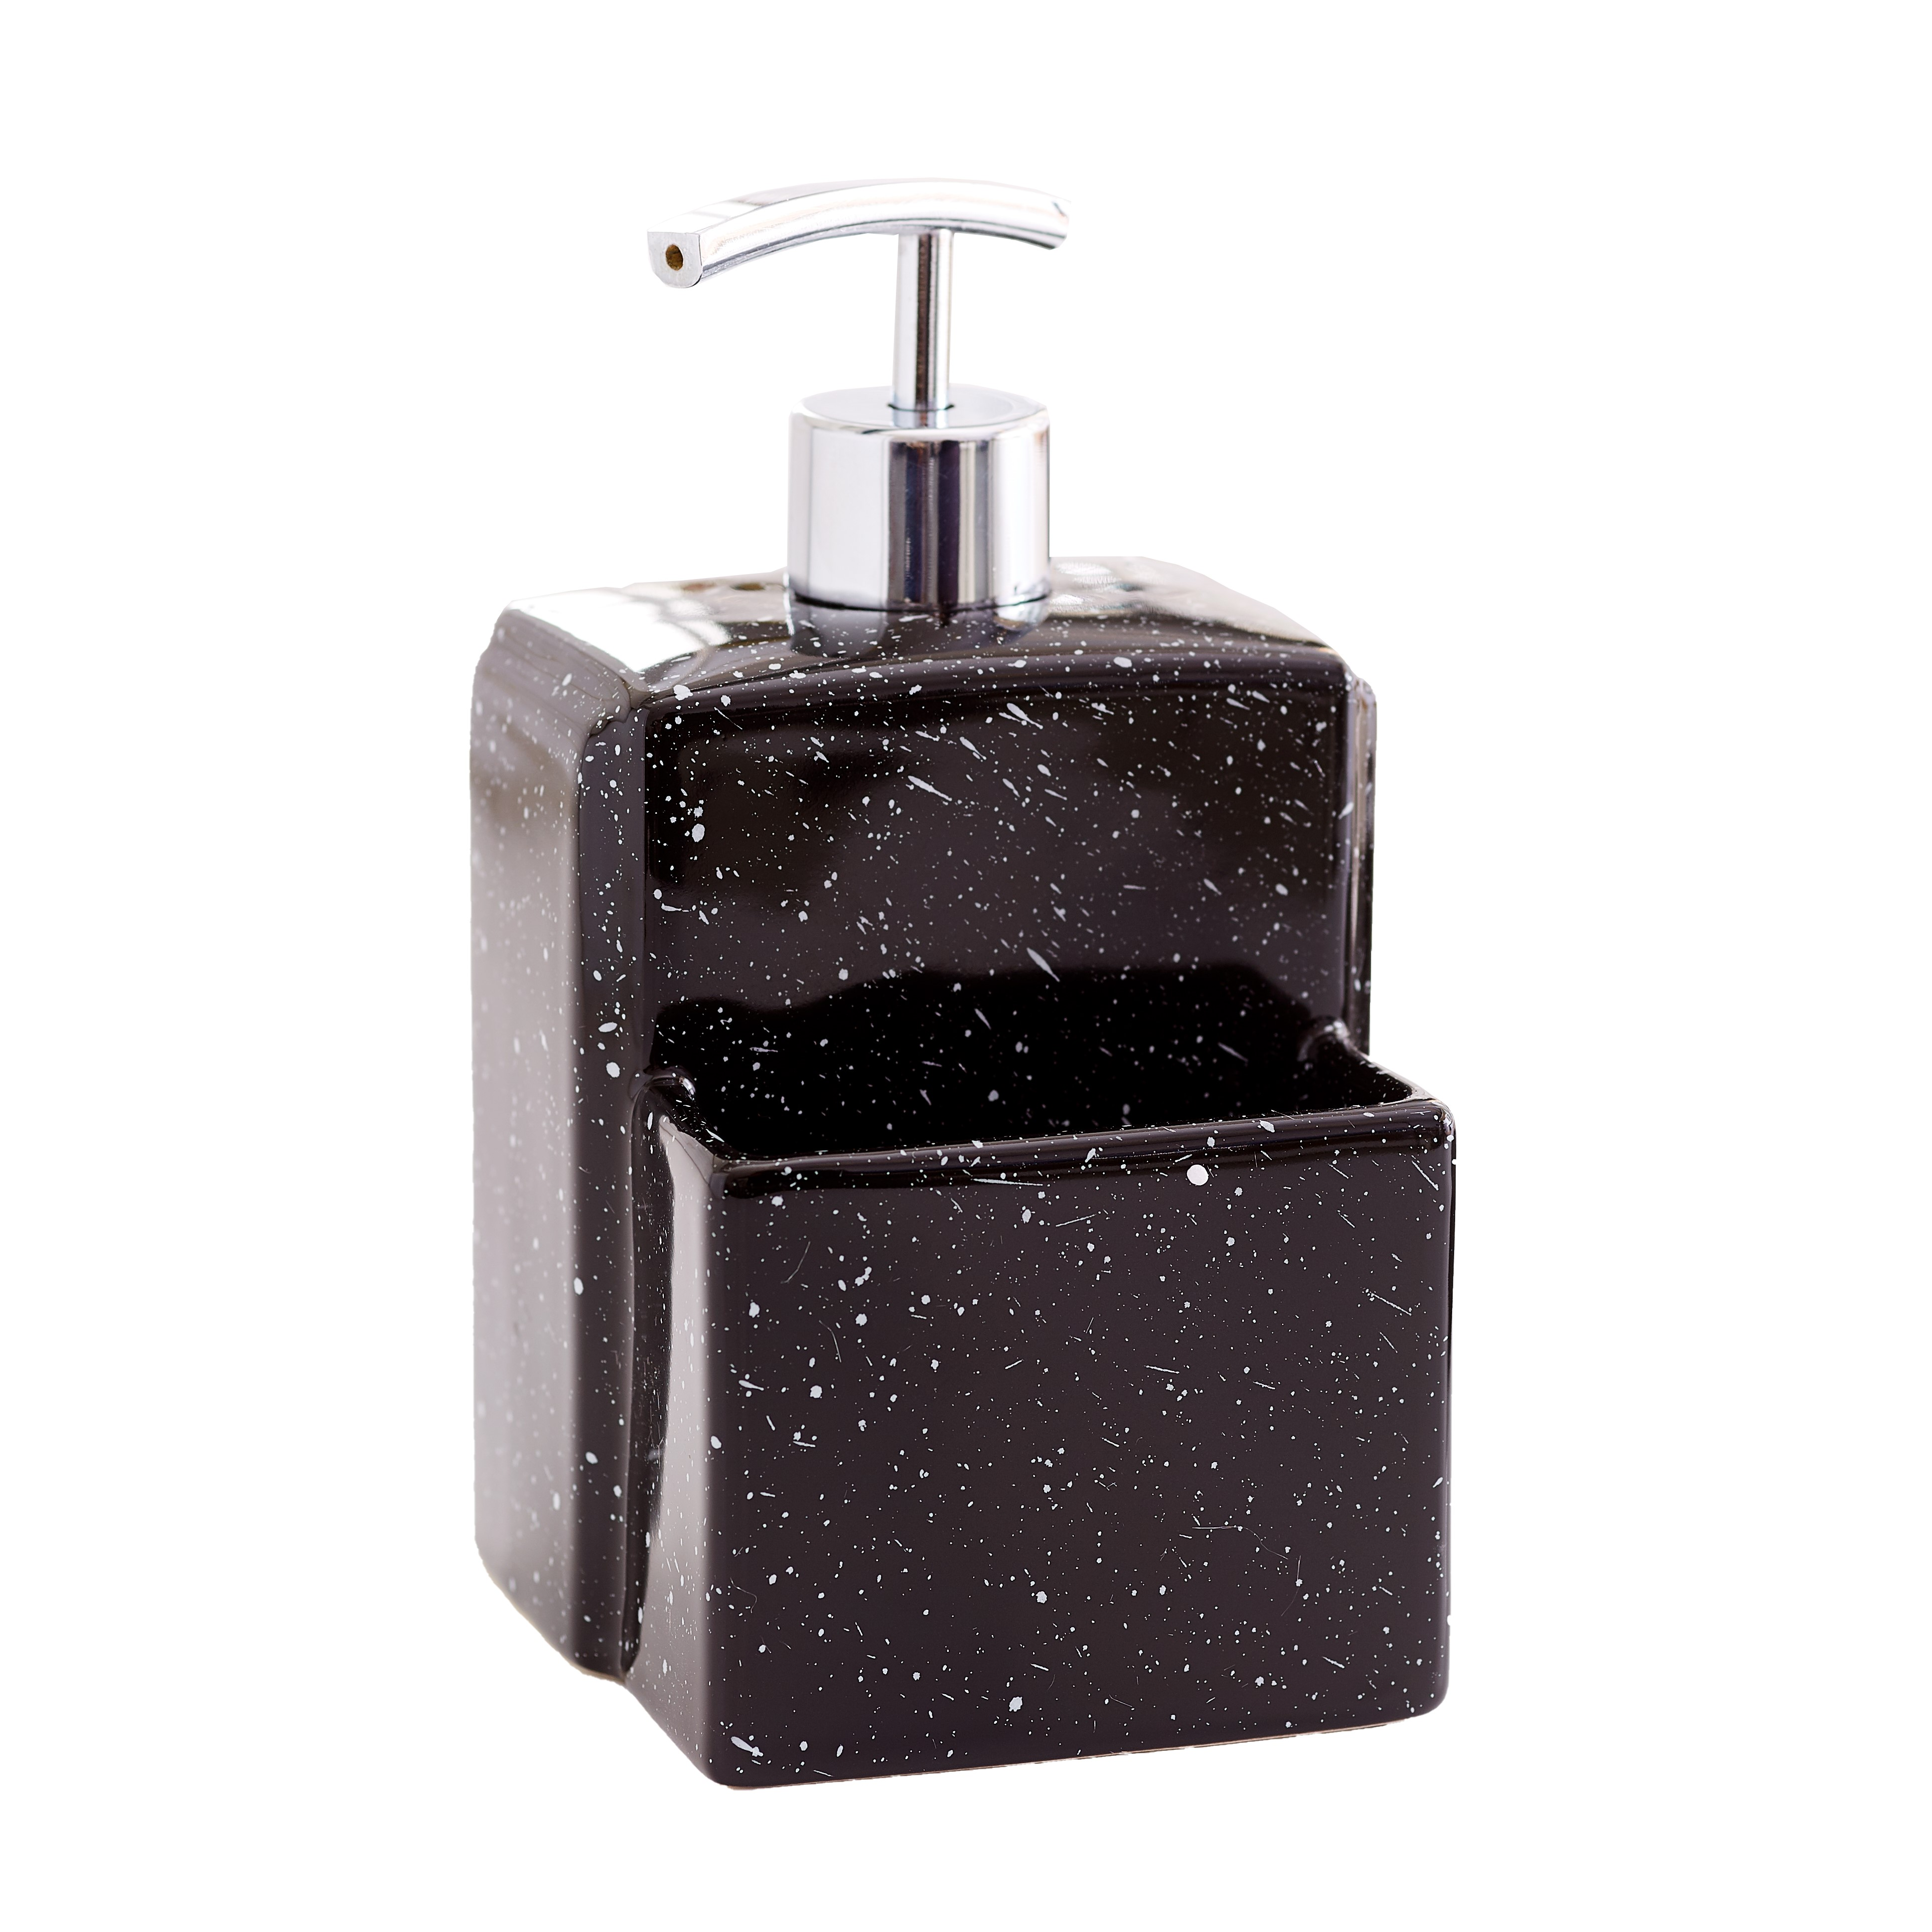 Details about Soap Dispenser with Sponge Holder - Kitchen Sink Caddy  Accessory